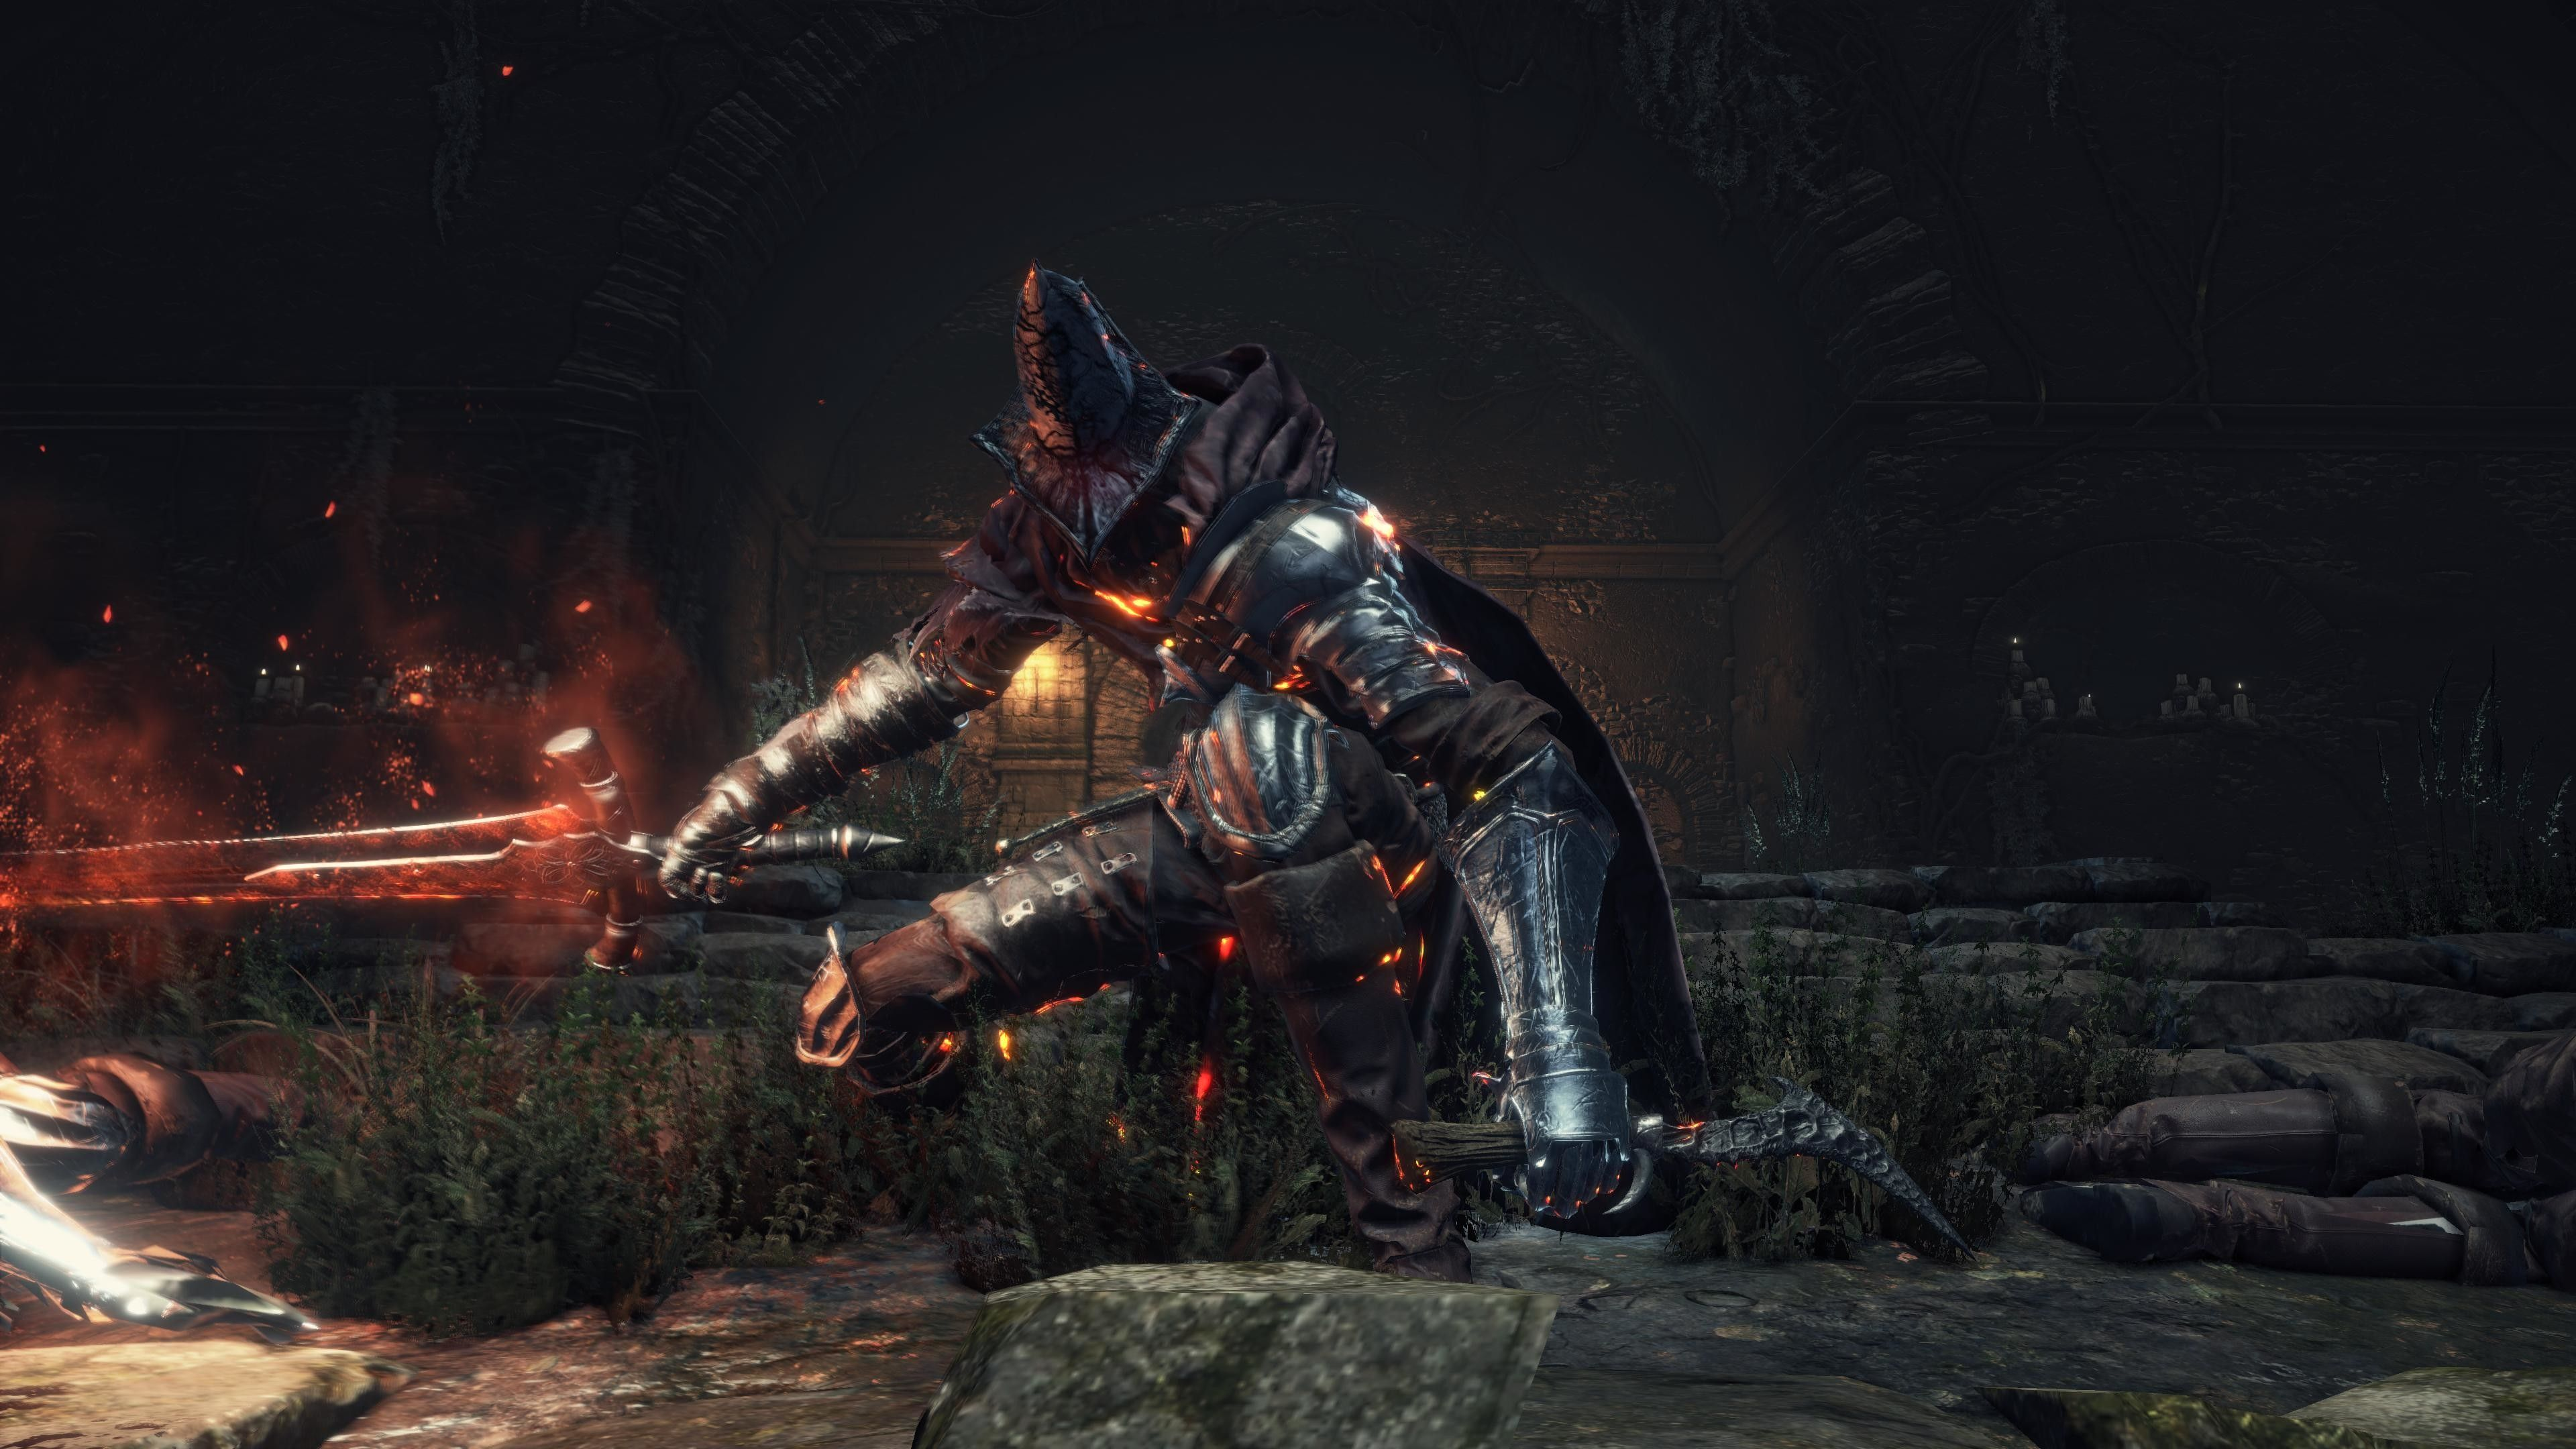 Res 3840x2160 Dark Souls 3 4k Pic 23 Abyss Watchers Part 2